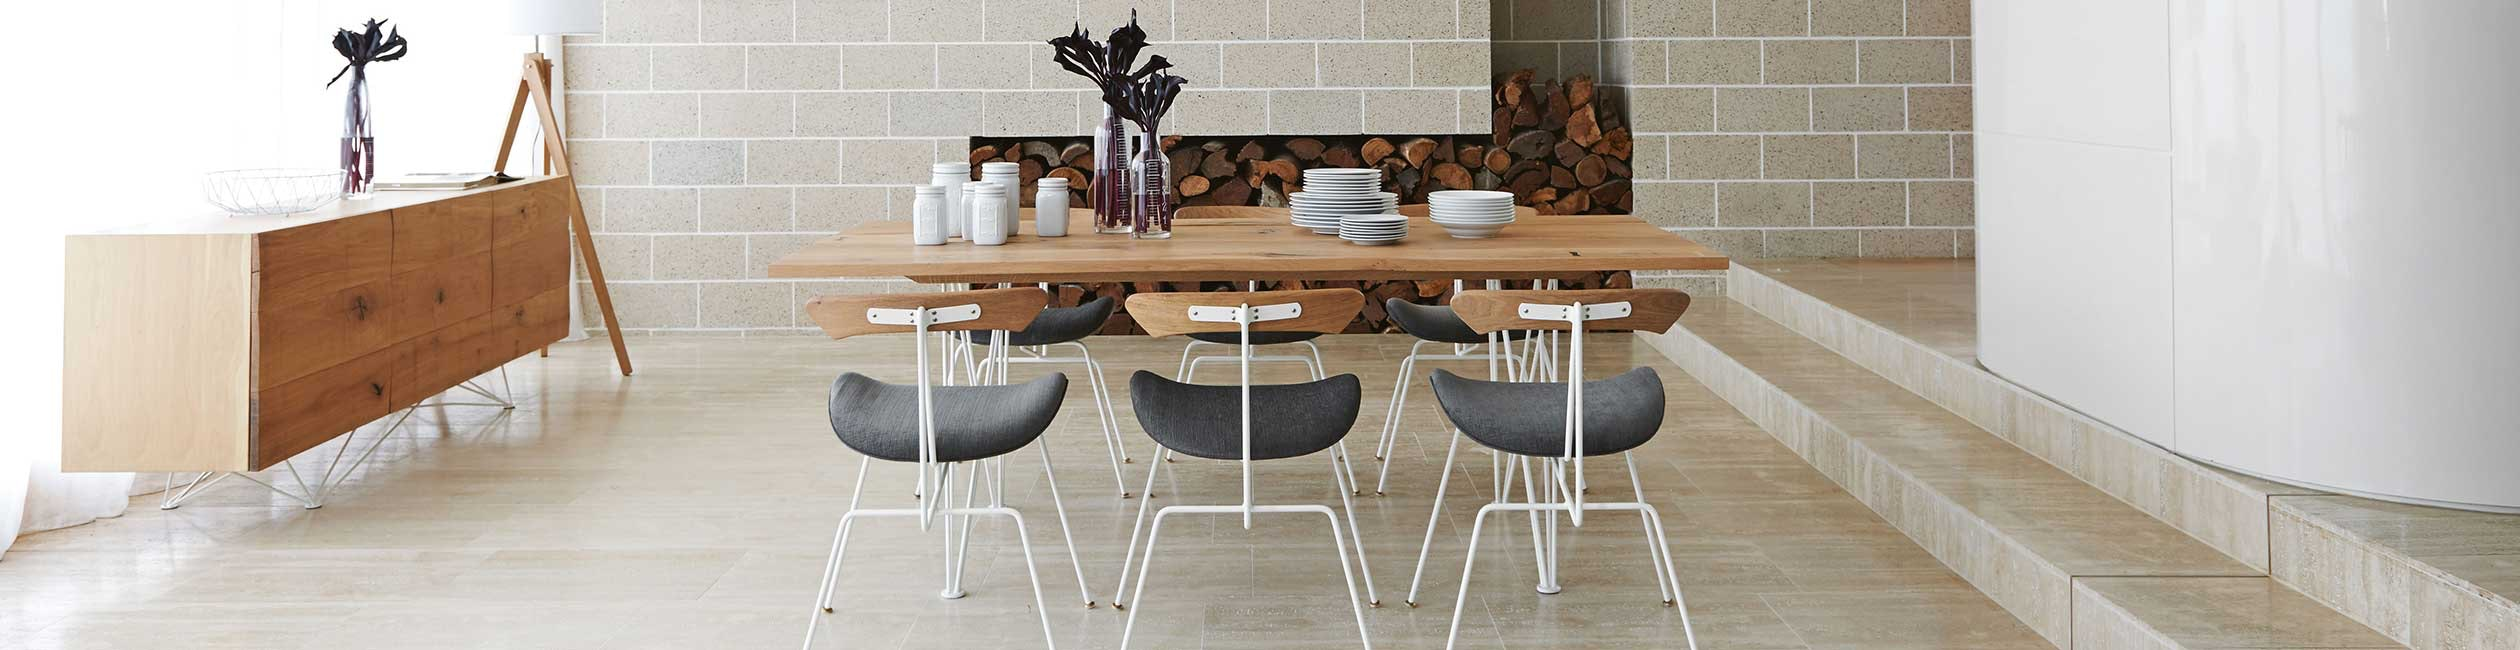 dining set with bar stools. furniture; dining set with bar stools